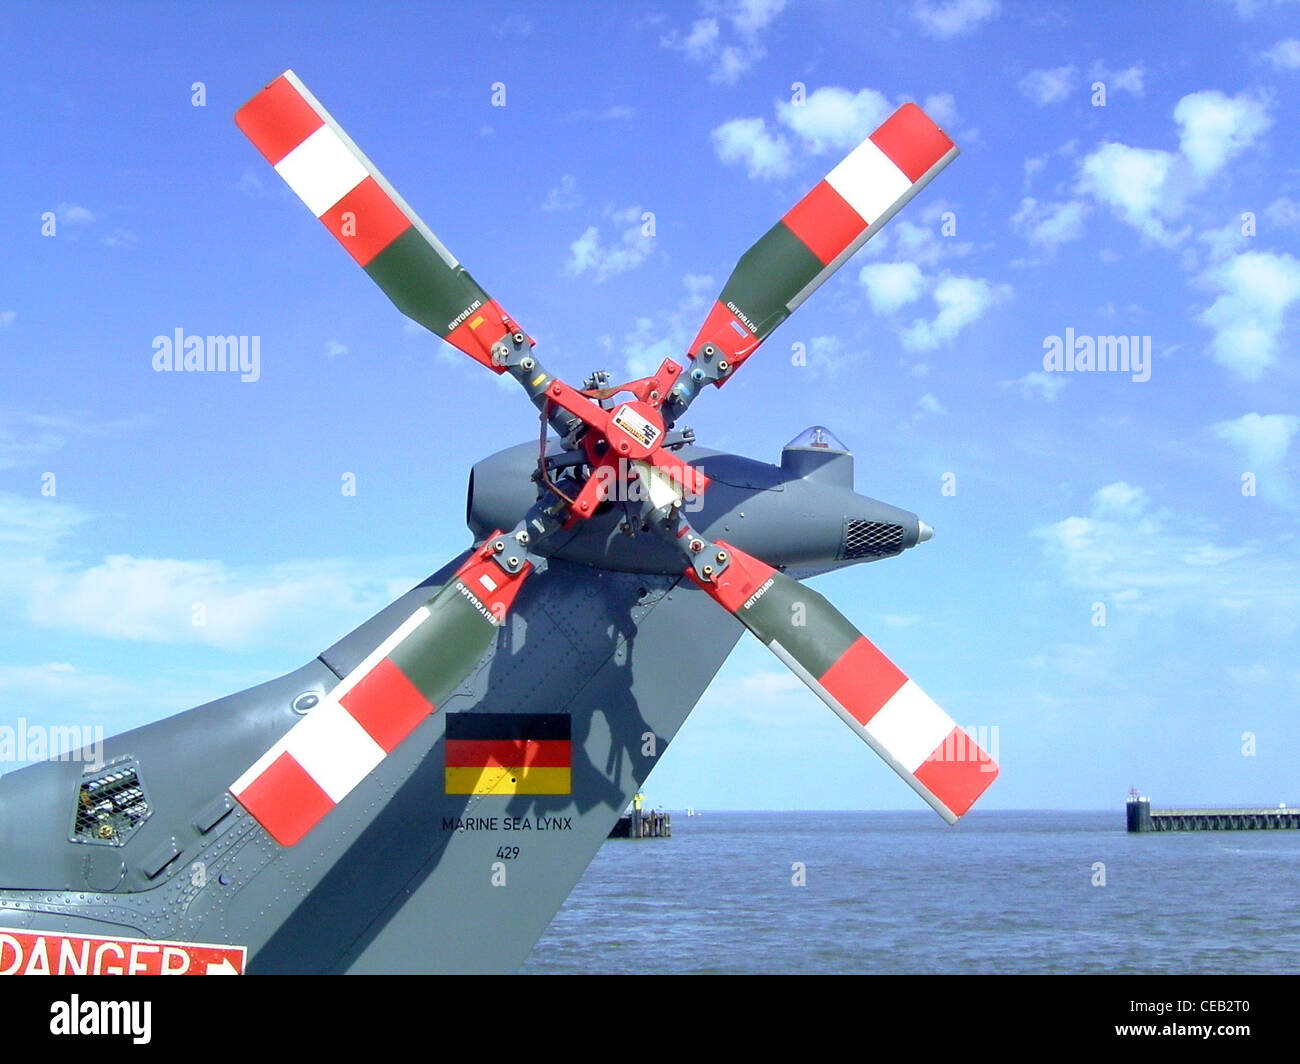 Tail rotor of a Sea Lynx MK 88 A helicopter of the German Navy - Stock Image